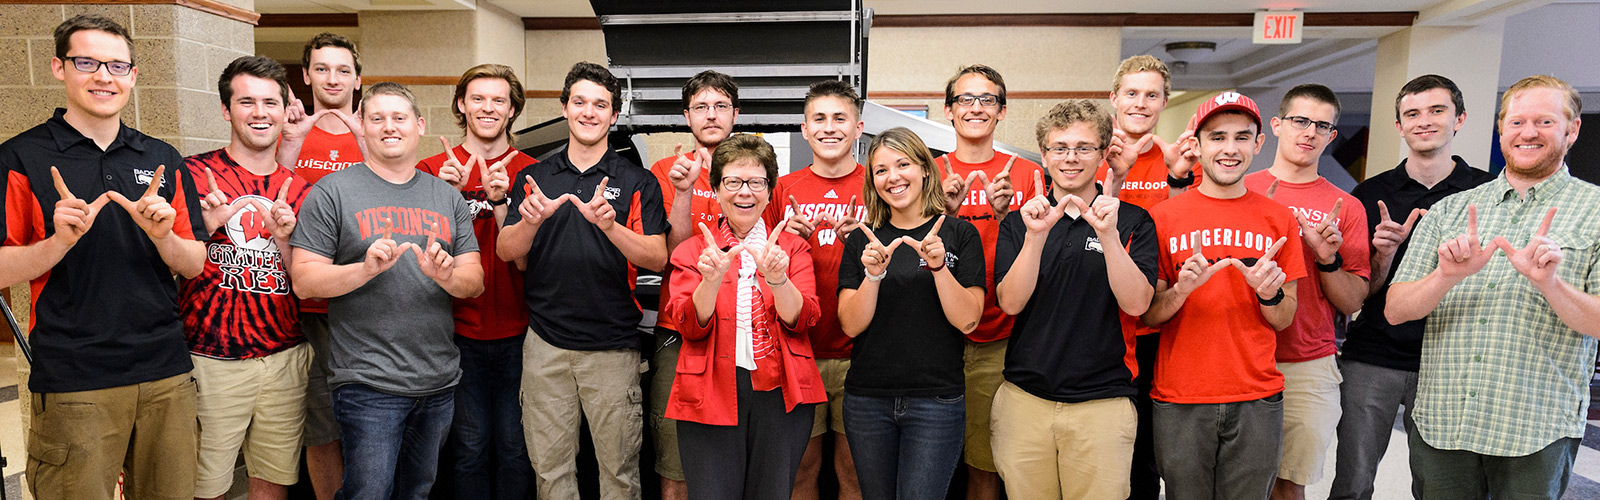 Standing near a 2016-era Badgerloop Pod, Chancellor Rebecca Blank visits with members of the College of Engineering's Badgerloop team at the Mechanical Engineering Building.